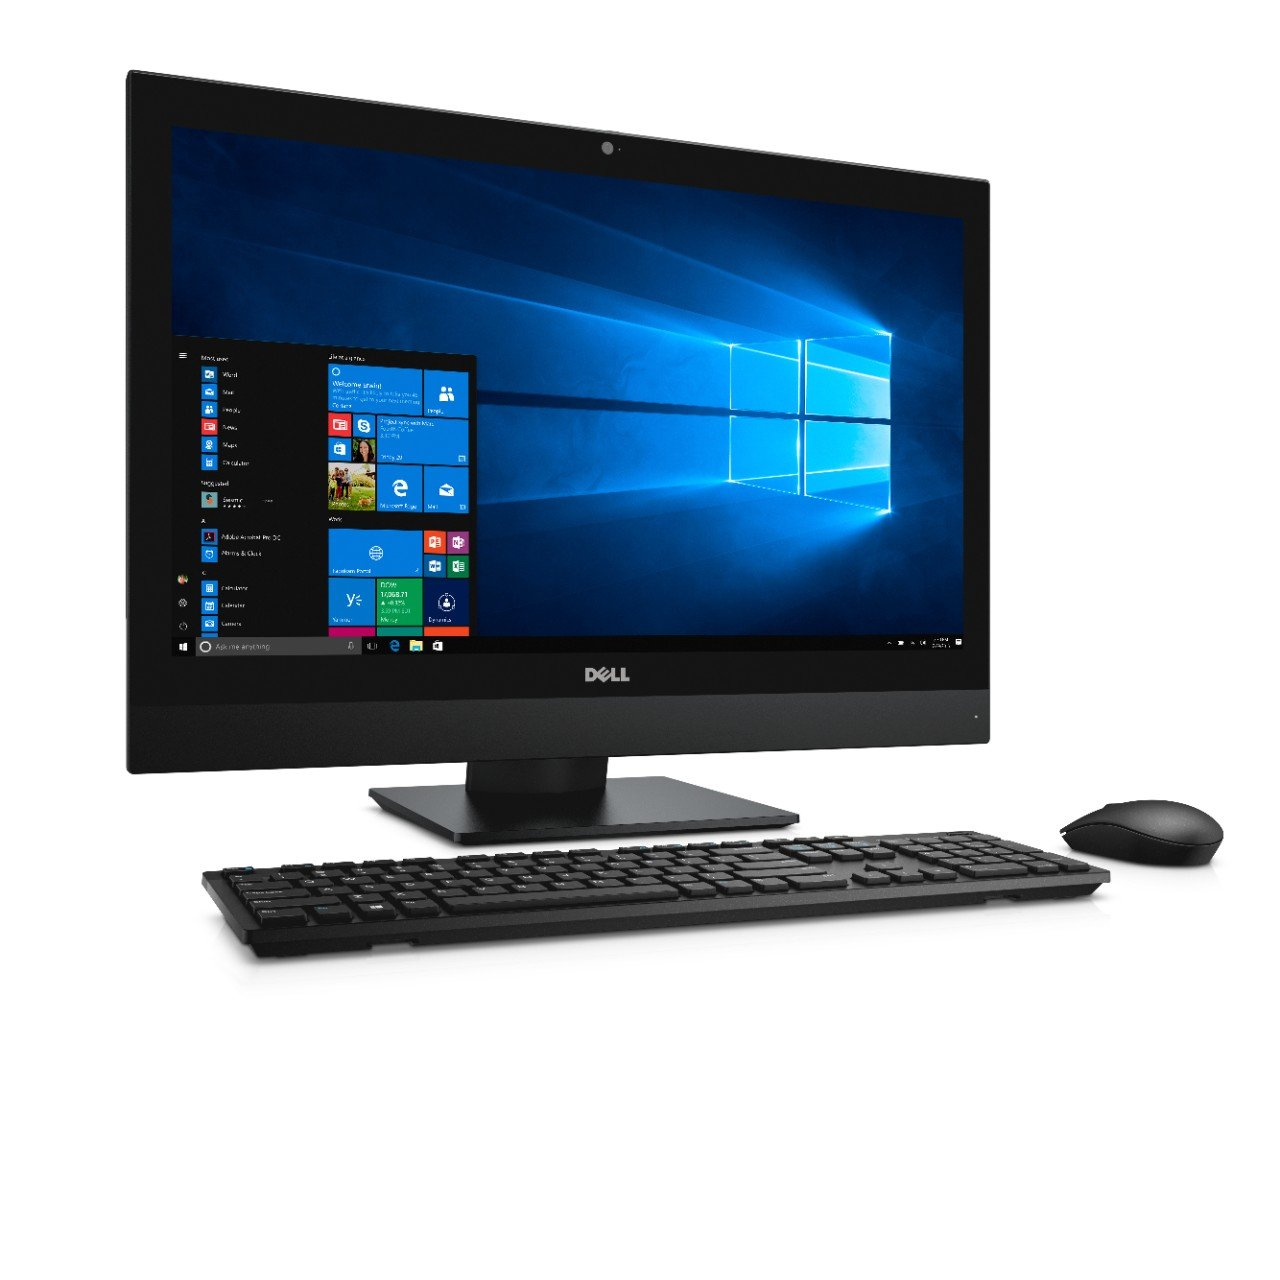 Dell OptiPlex 7450 All In One Desktop Computer, Intel Core i7-7700, 8GB DDR4, 256GB Solid State Drive, Windows 10 Pro (73NM3) by Dell